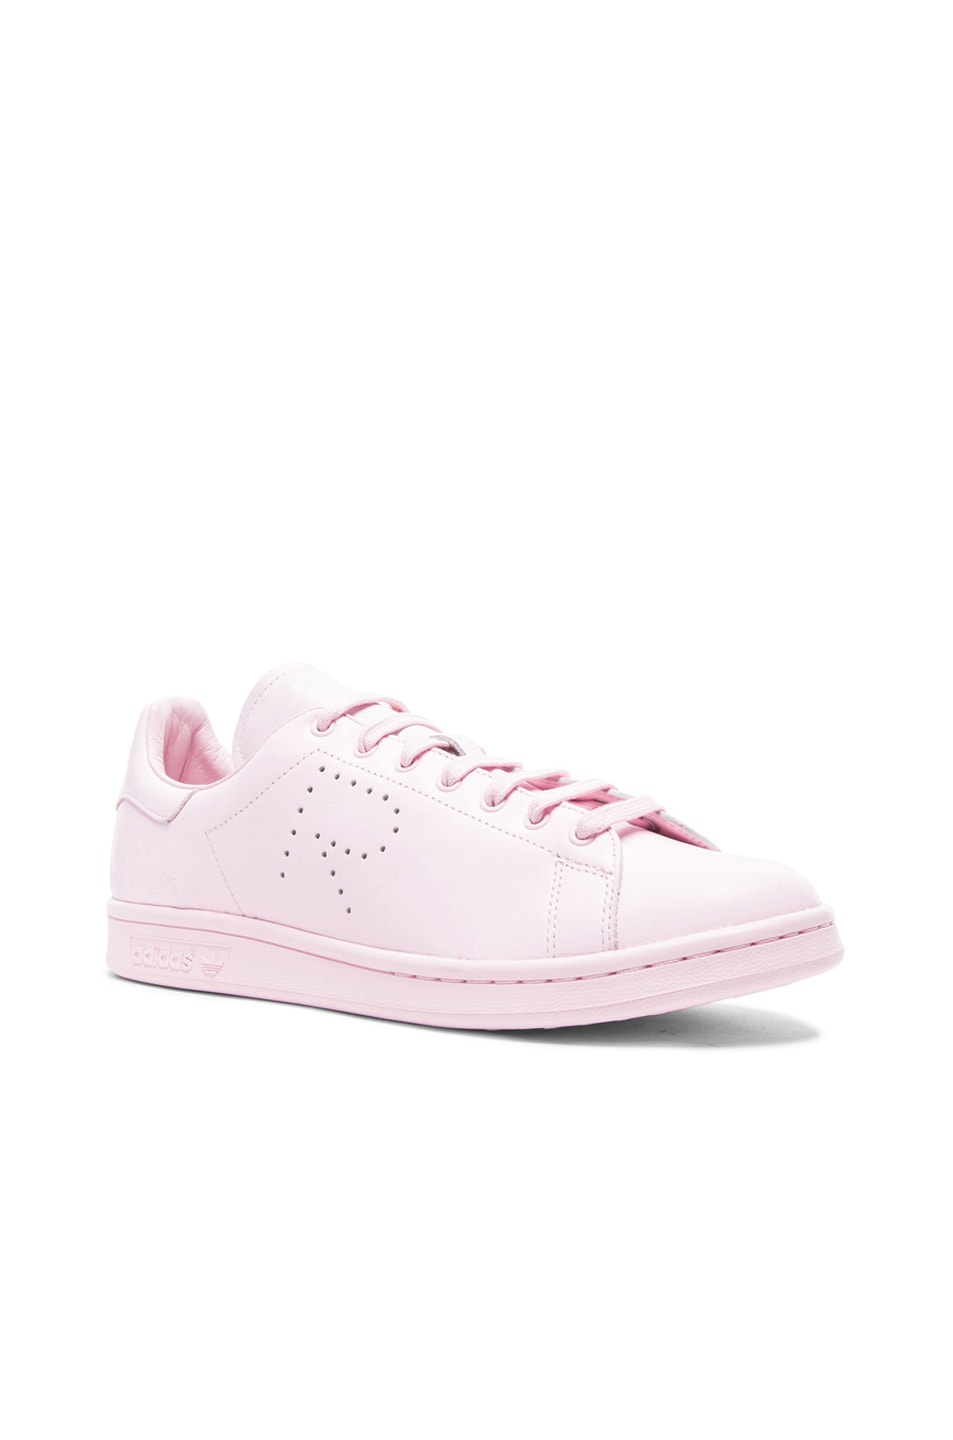 super cute c2d78 a9382 Image 1 of Raf Simons x Adidas Stan Smith in Clear Pink